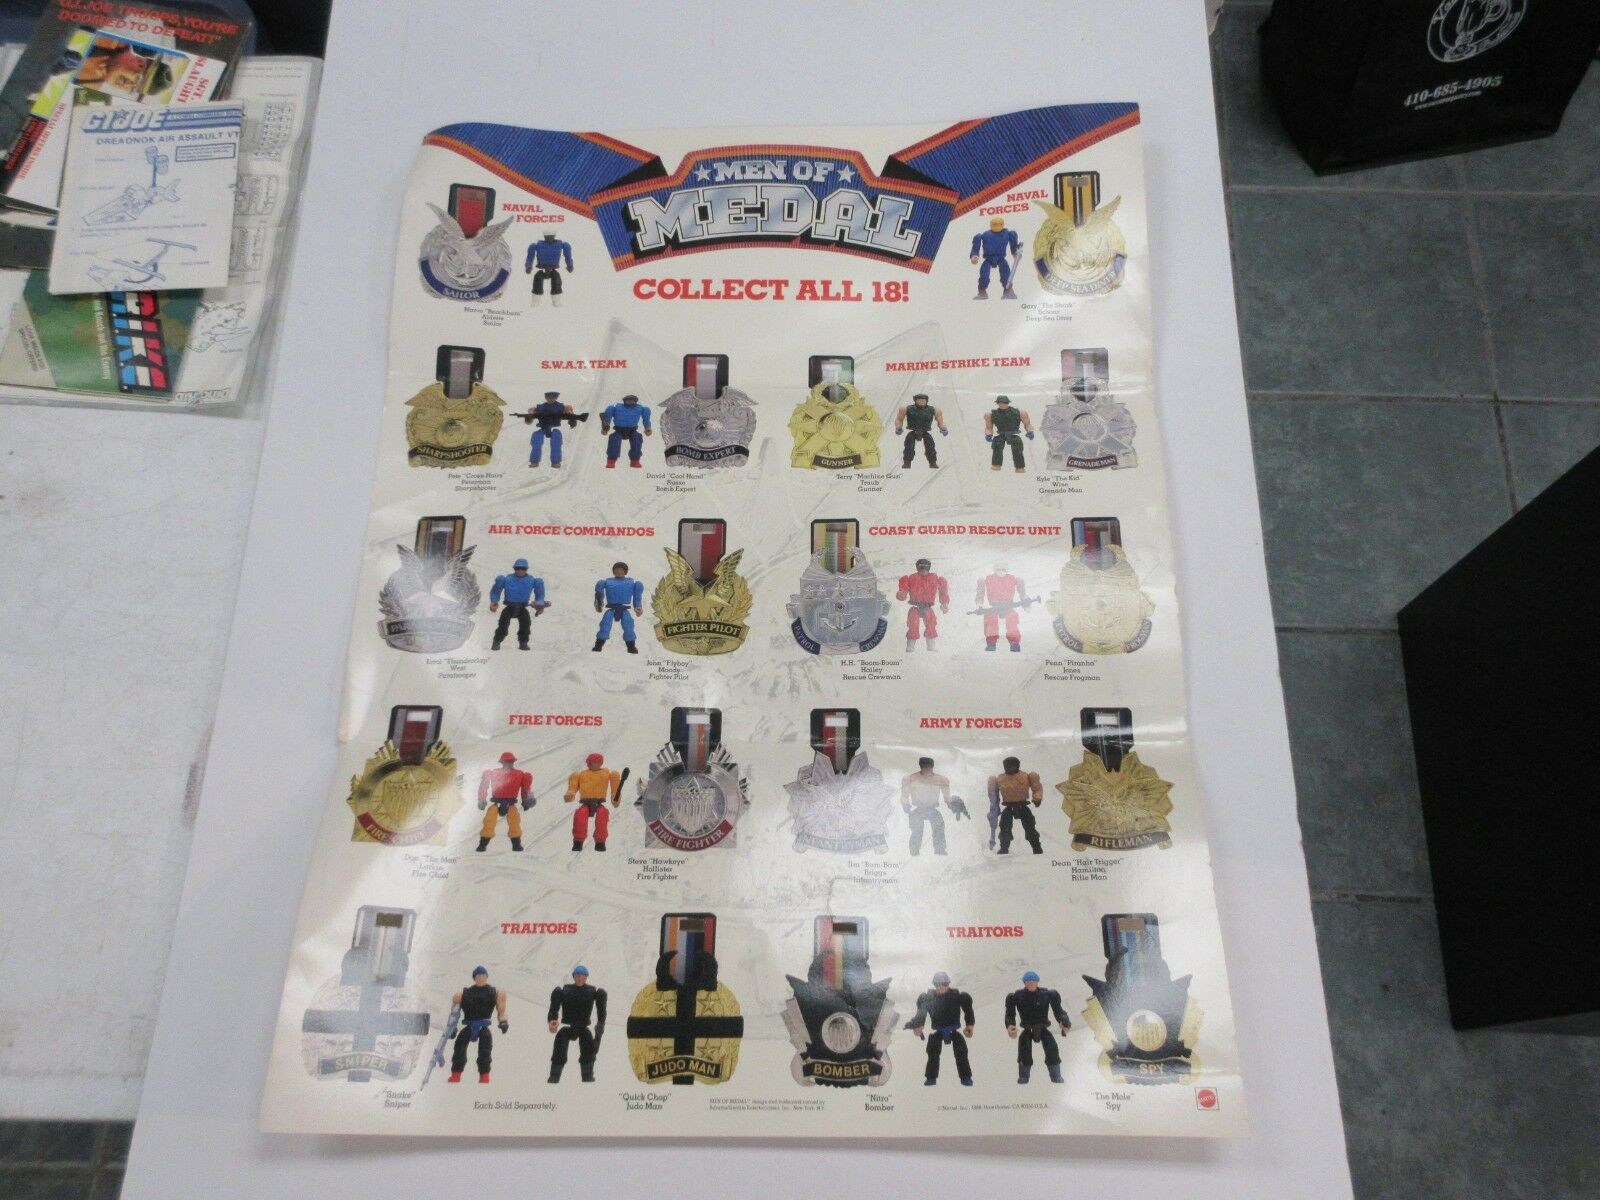 1988 MATTEL MEN OF MEDAL POSTER WITH 18 FIGURES PICTURED